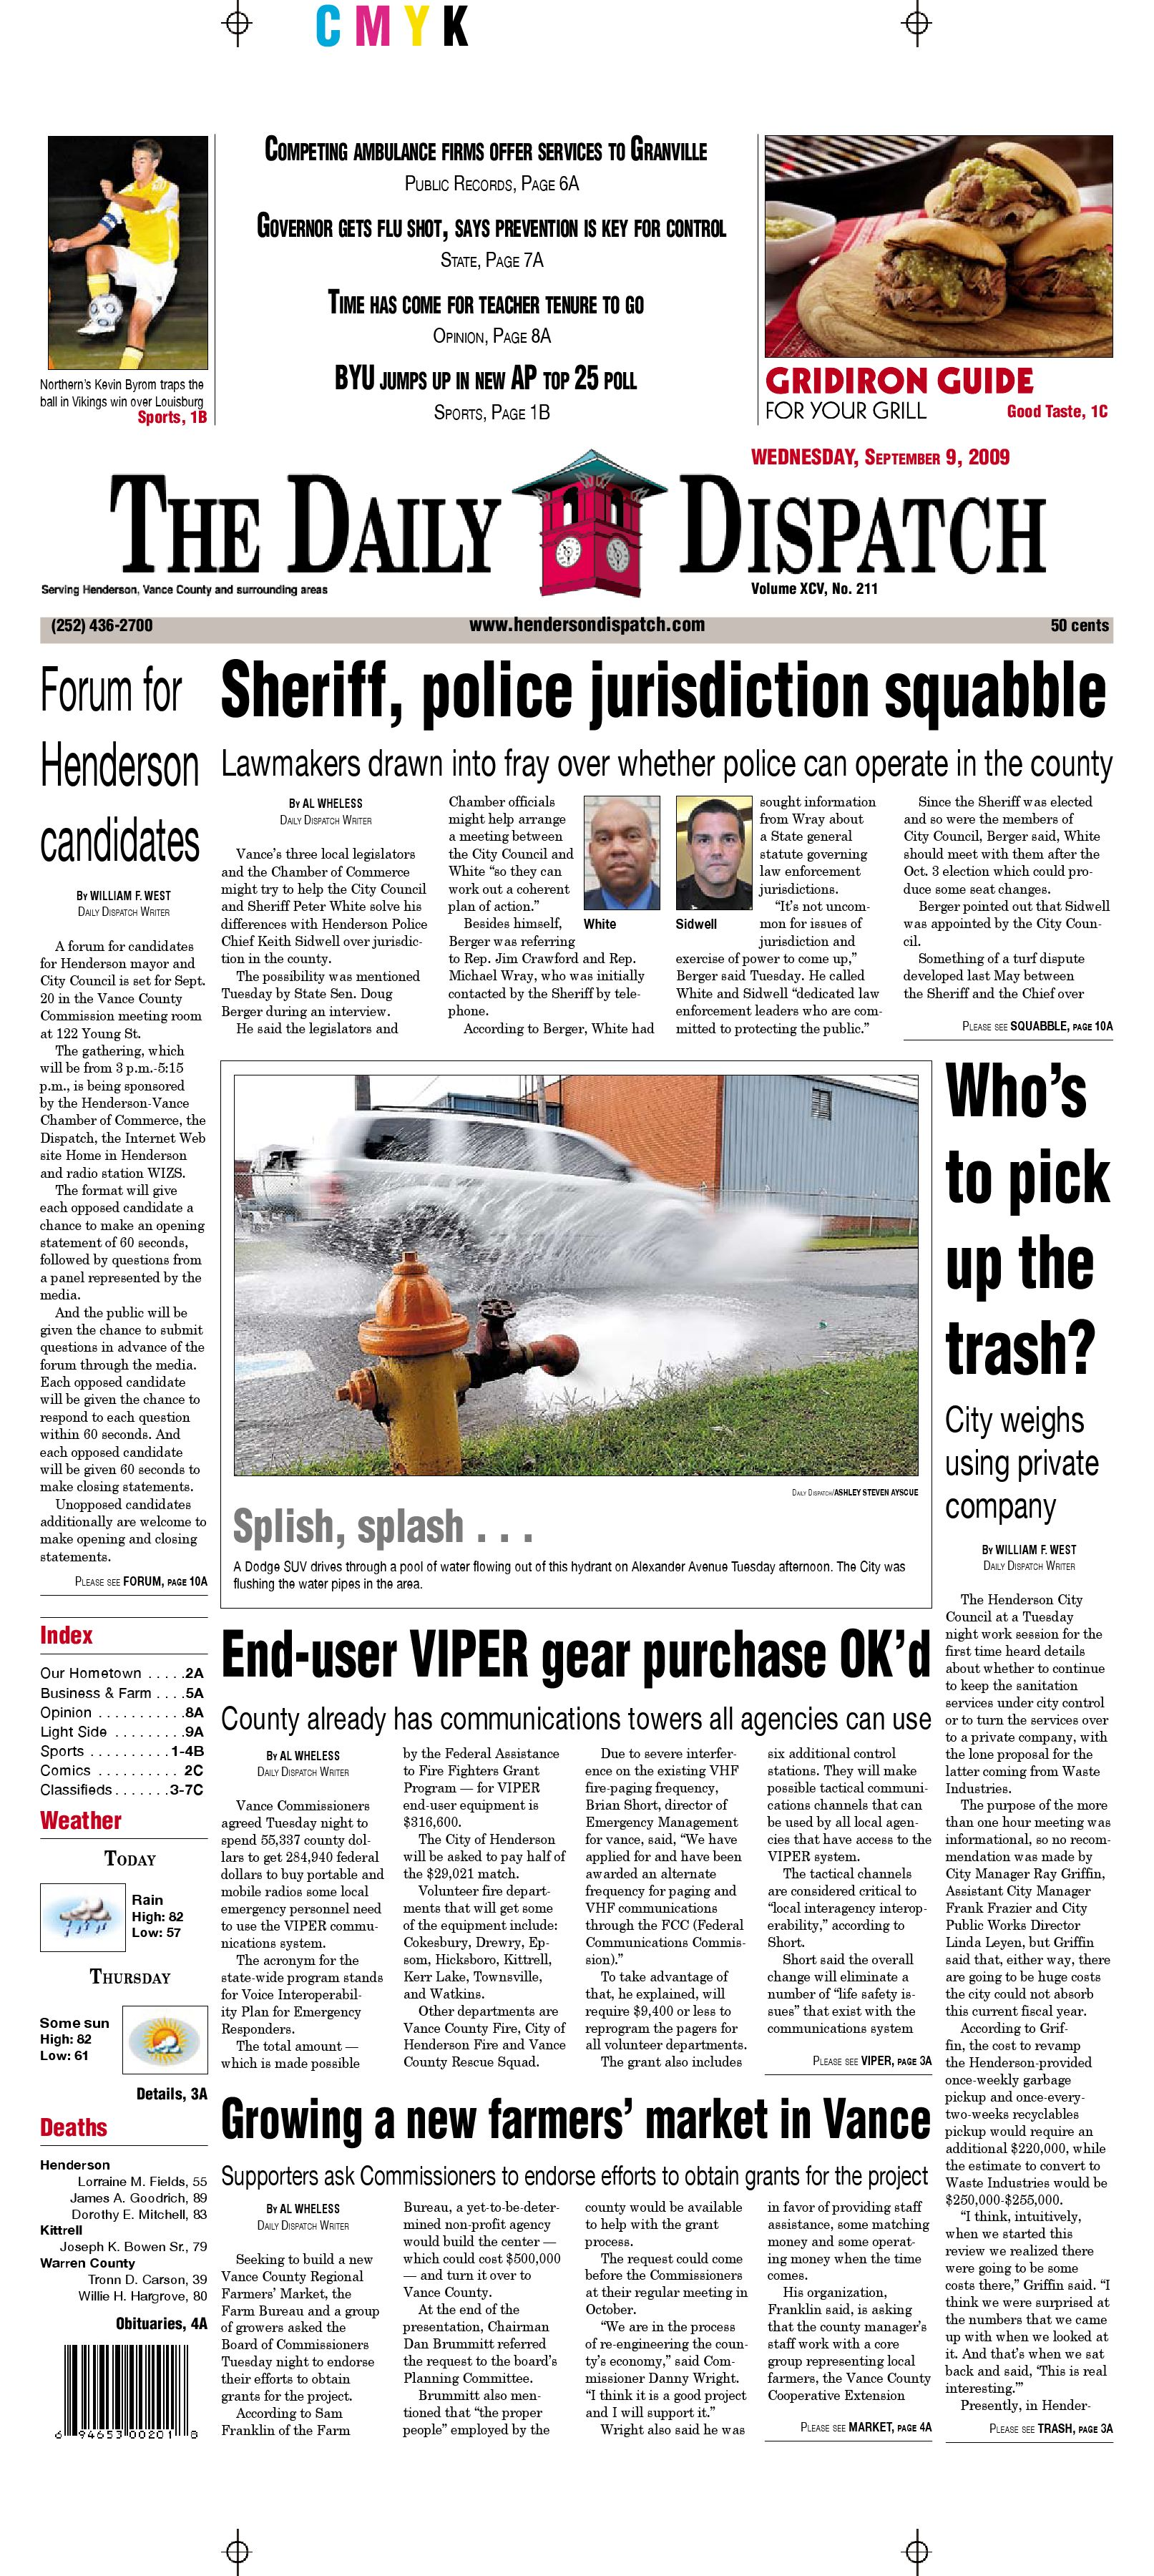 The Daily Dispatch - Wednesday, September 9, 2009 by The